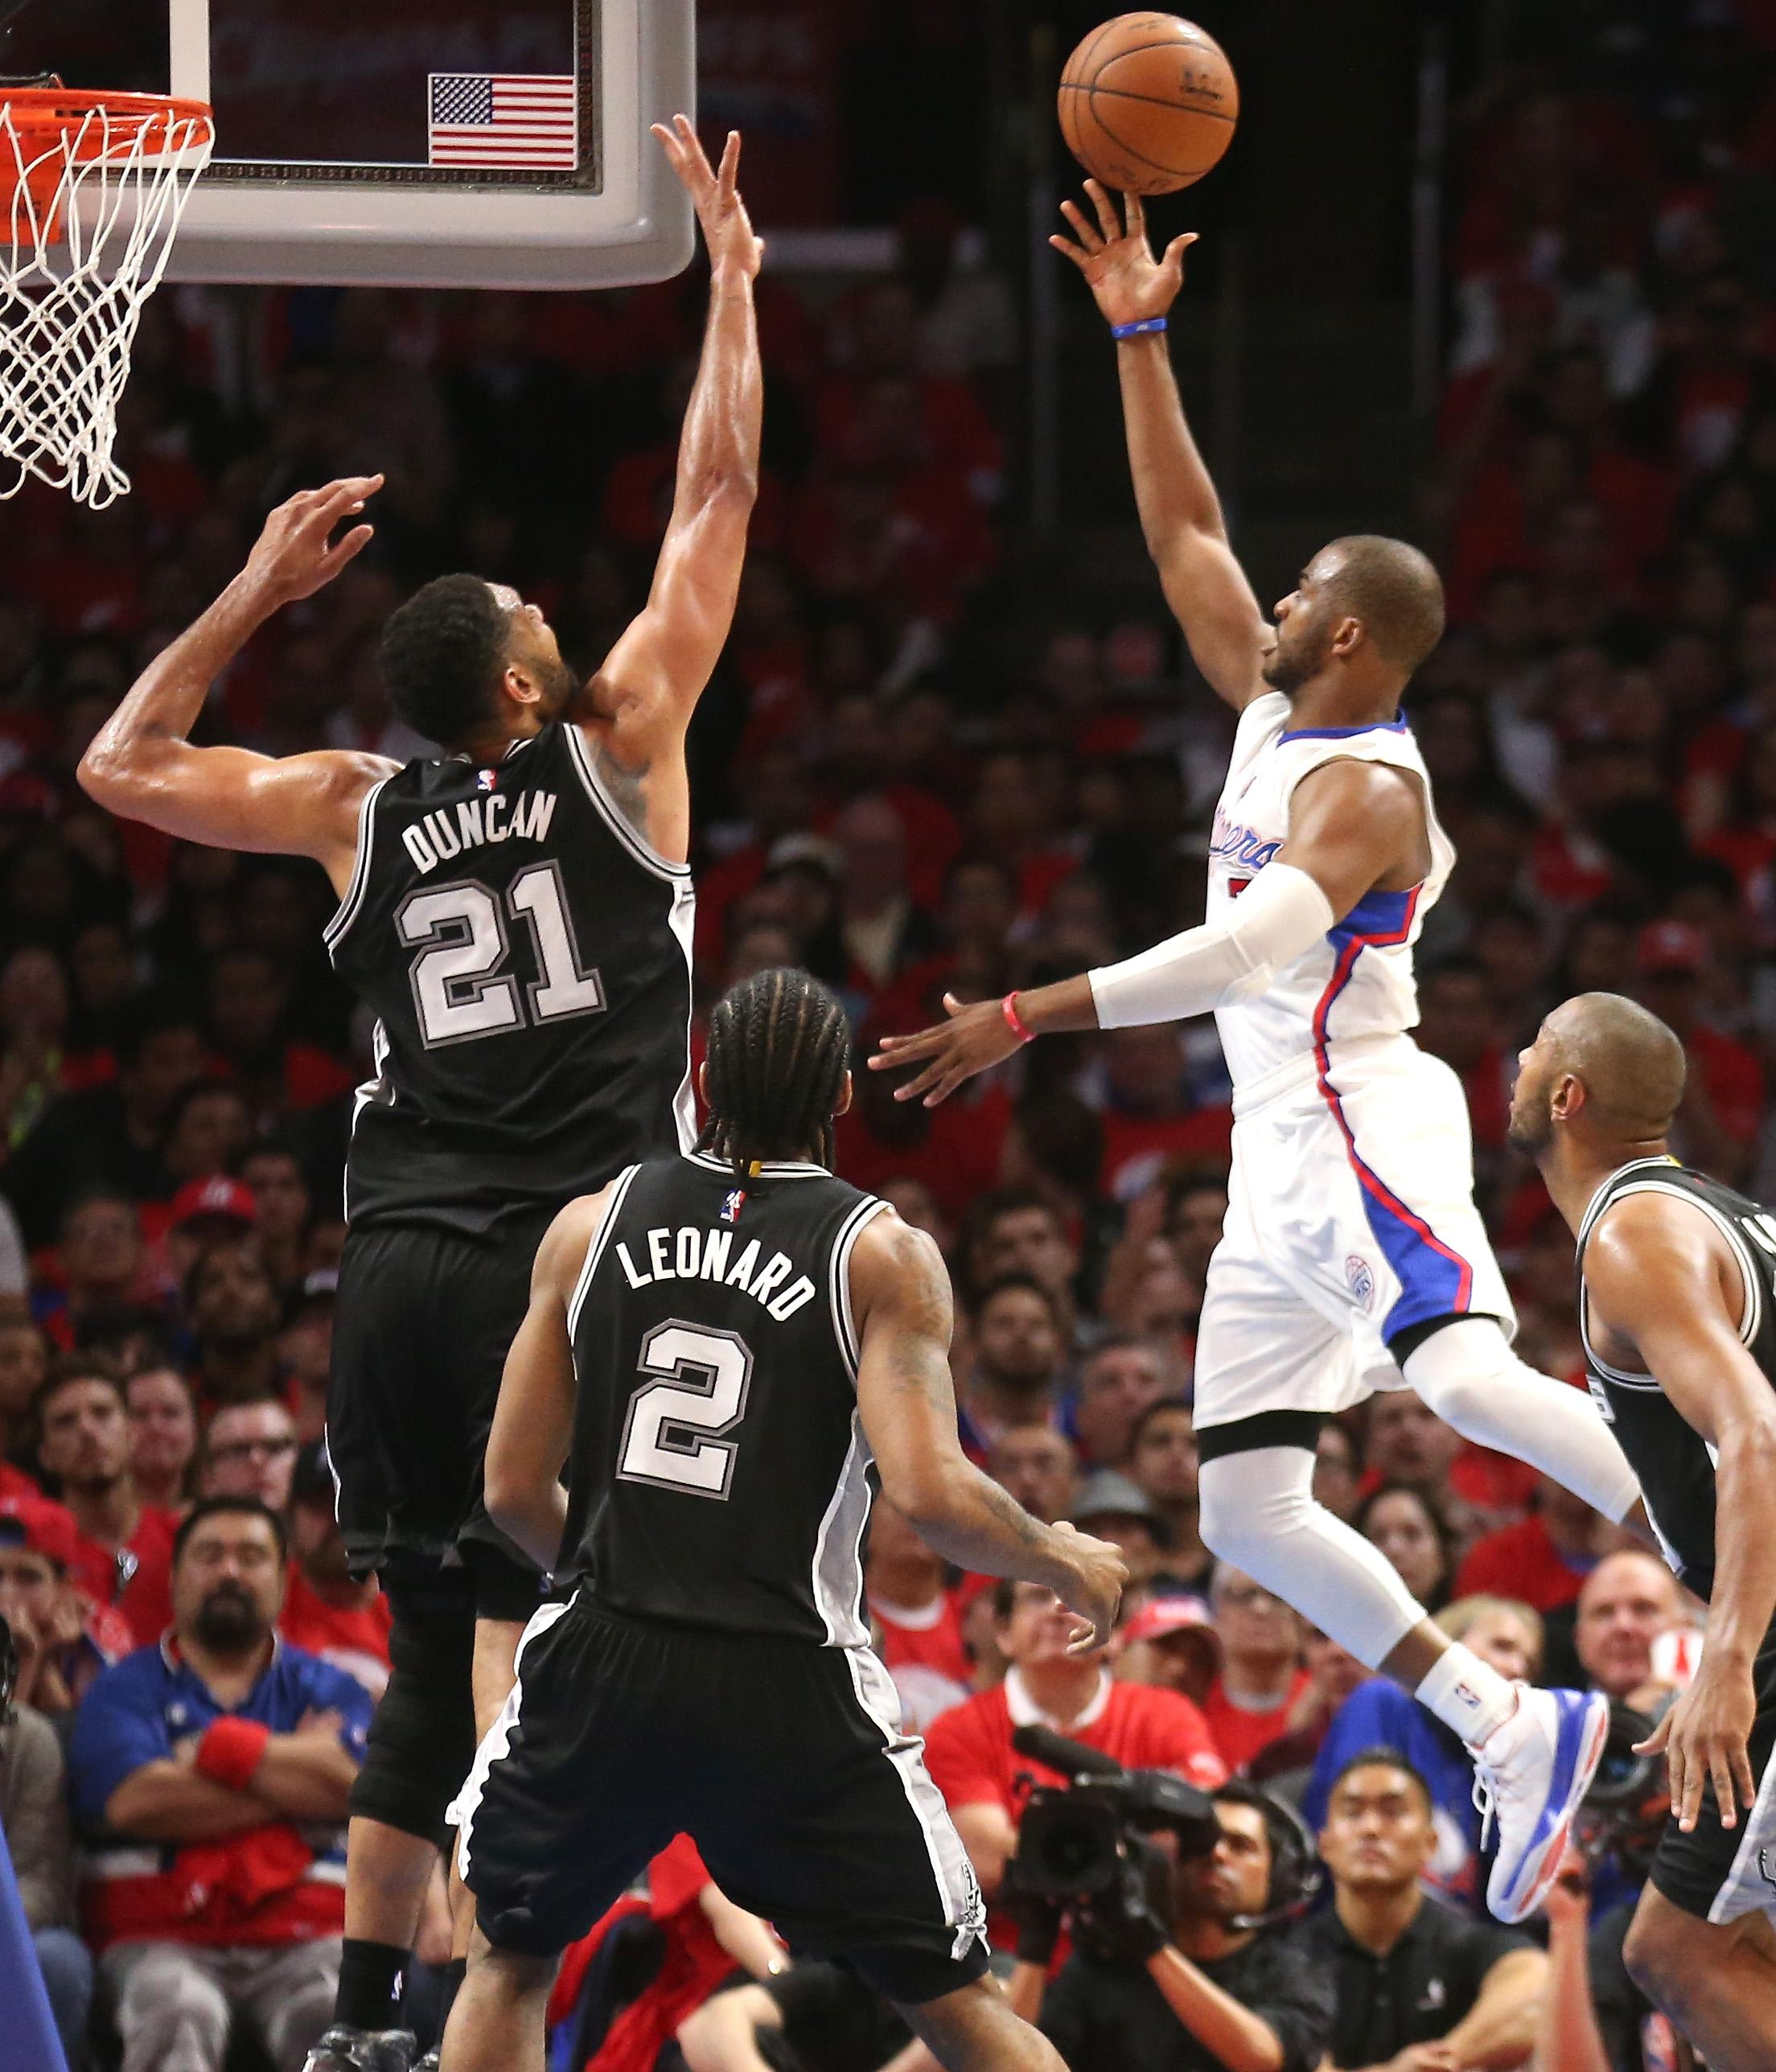 CP3, Griffin lead Clippers past Spurs 107-92 in opener